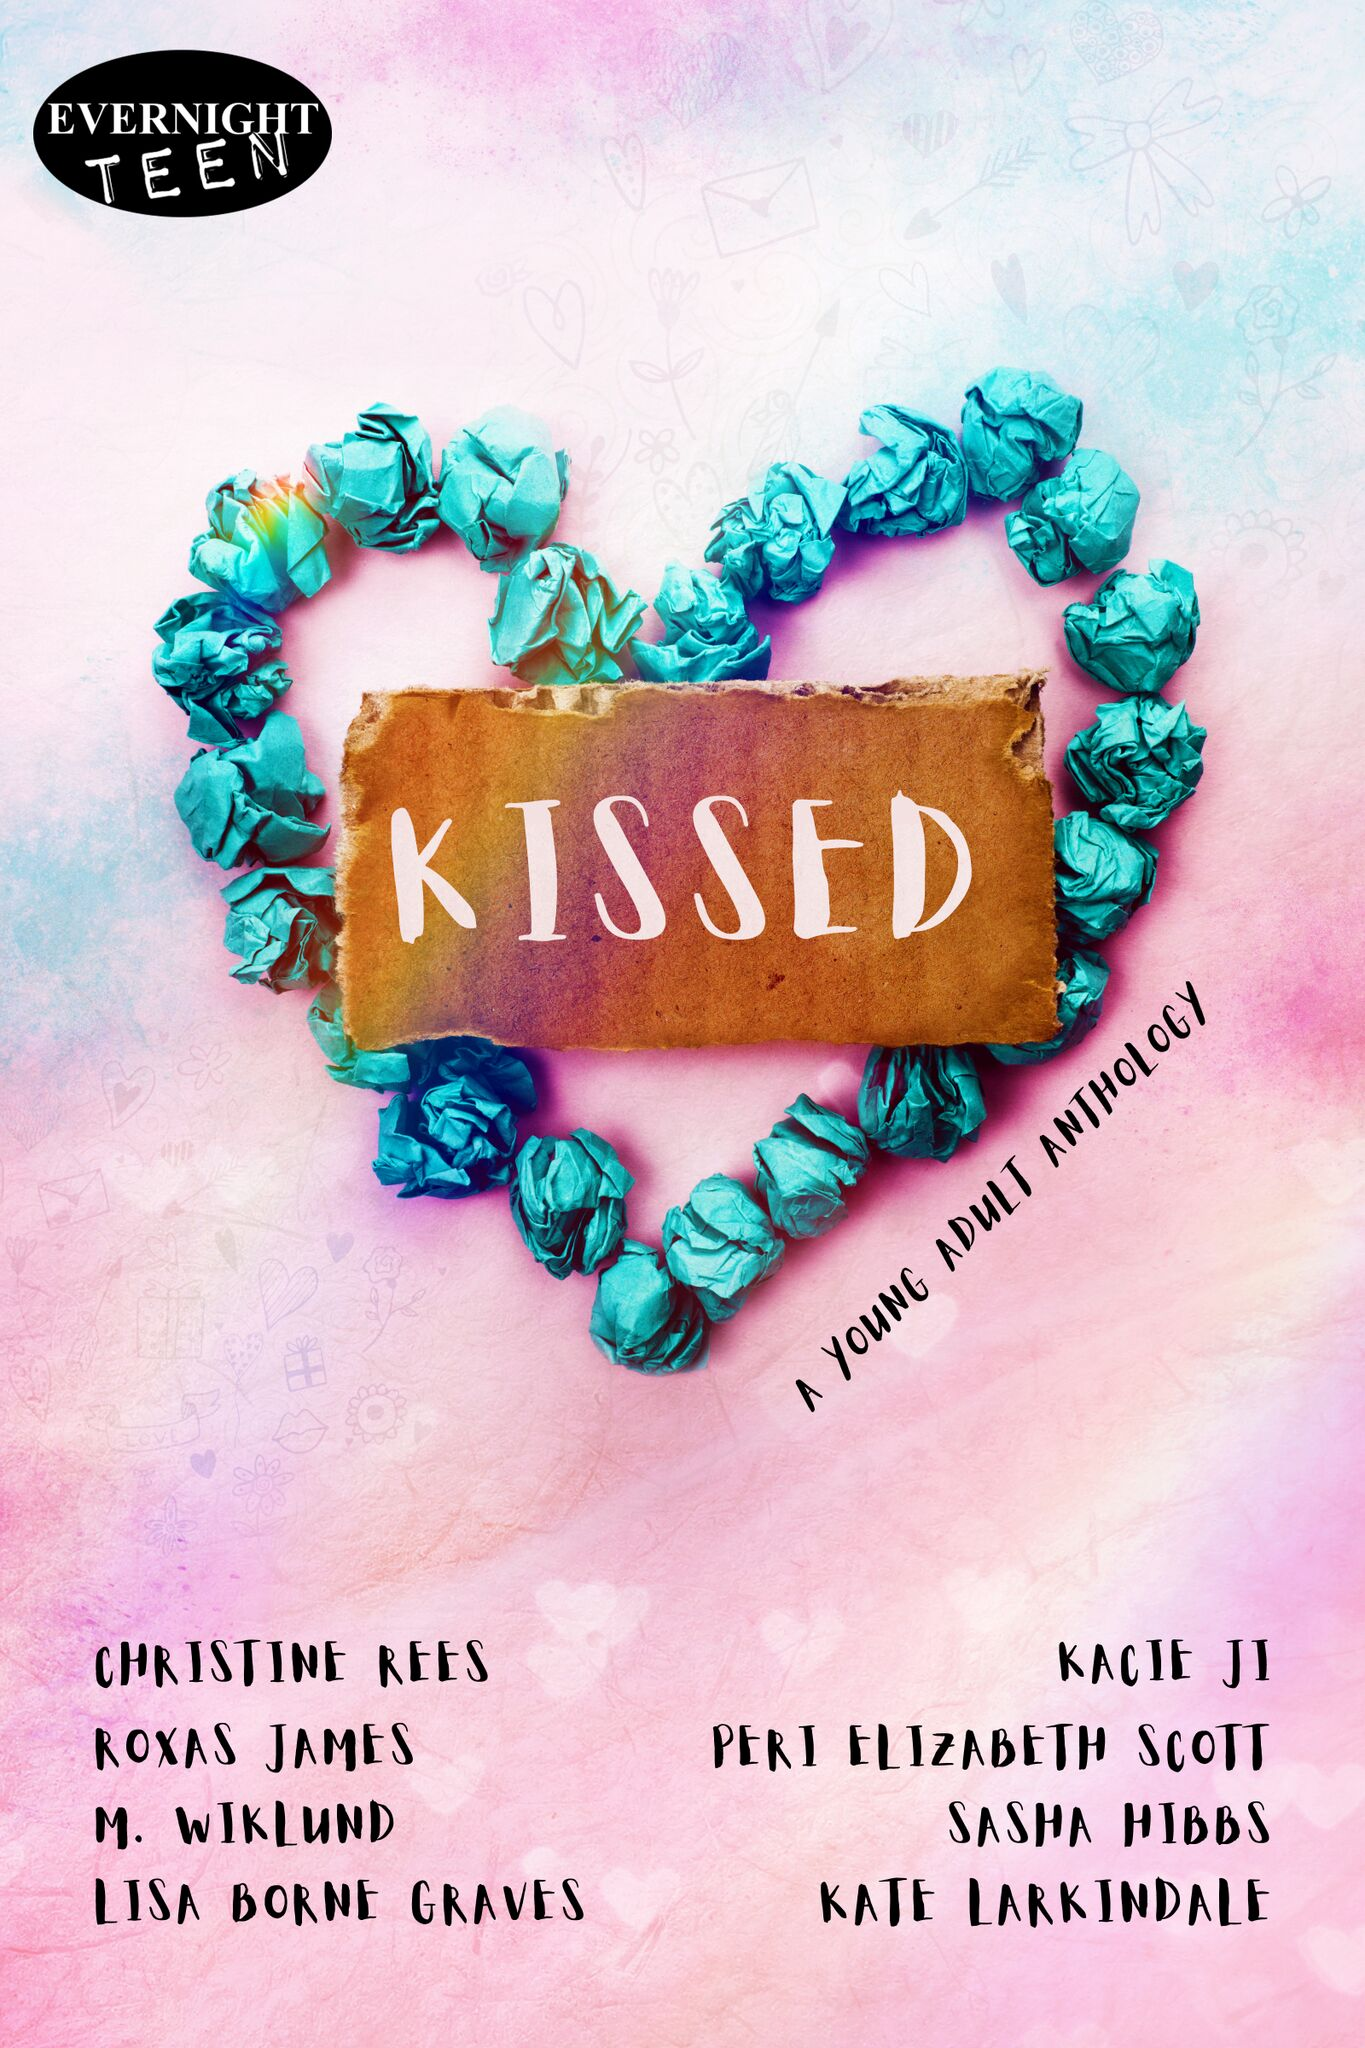 Kissed-evernightpublishing-2018-finalimage_preview.jpg